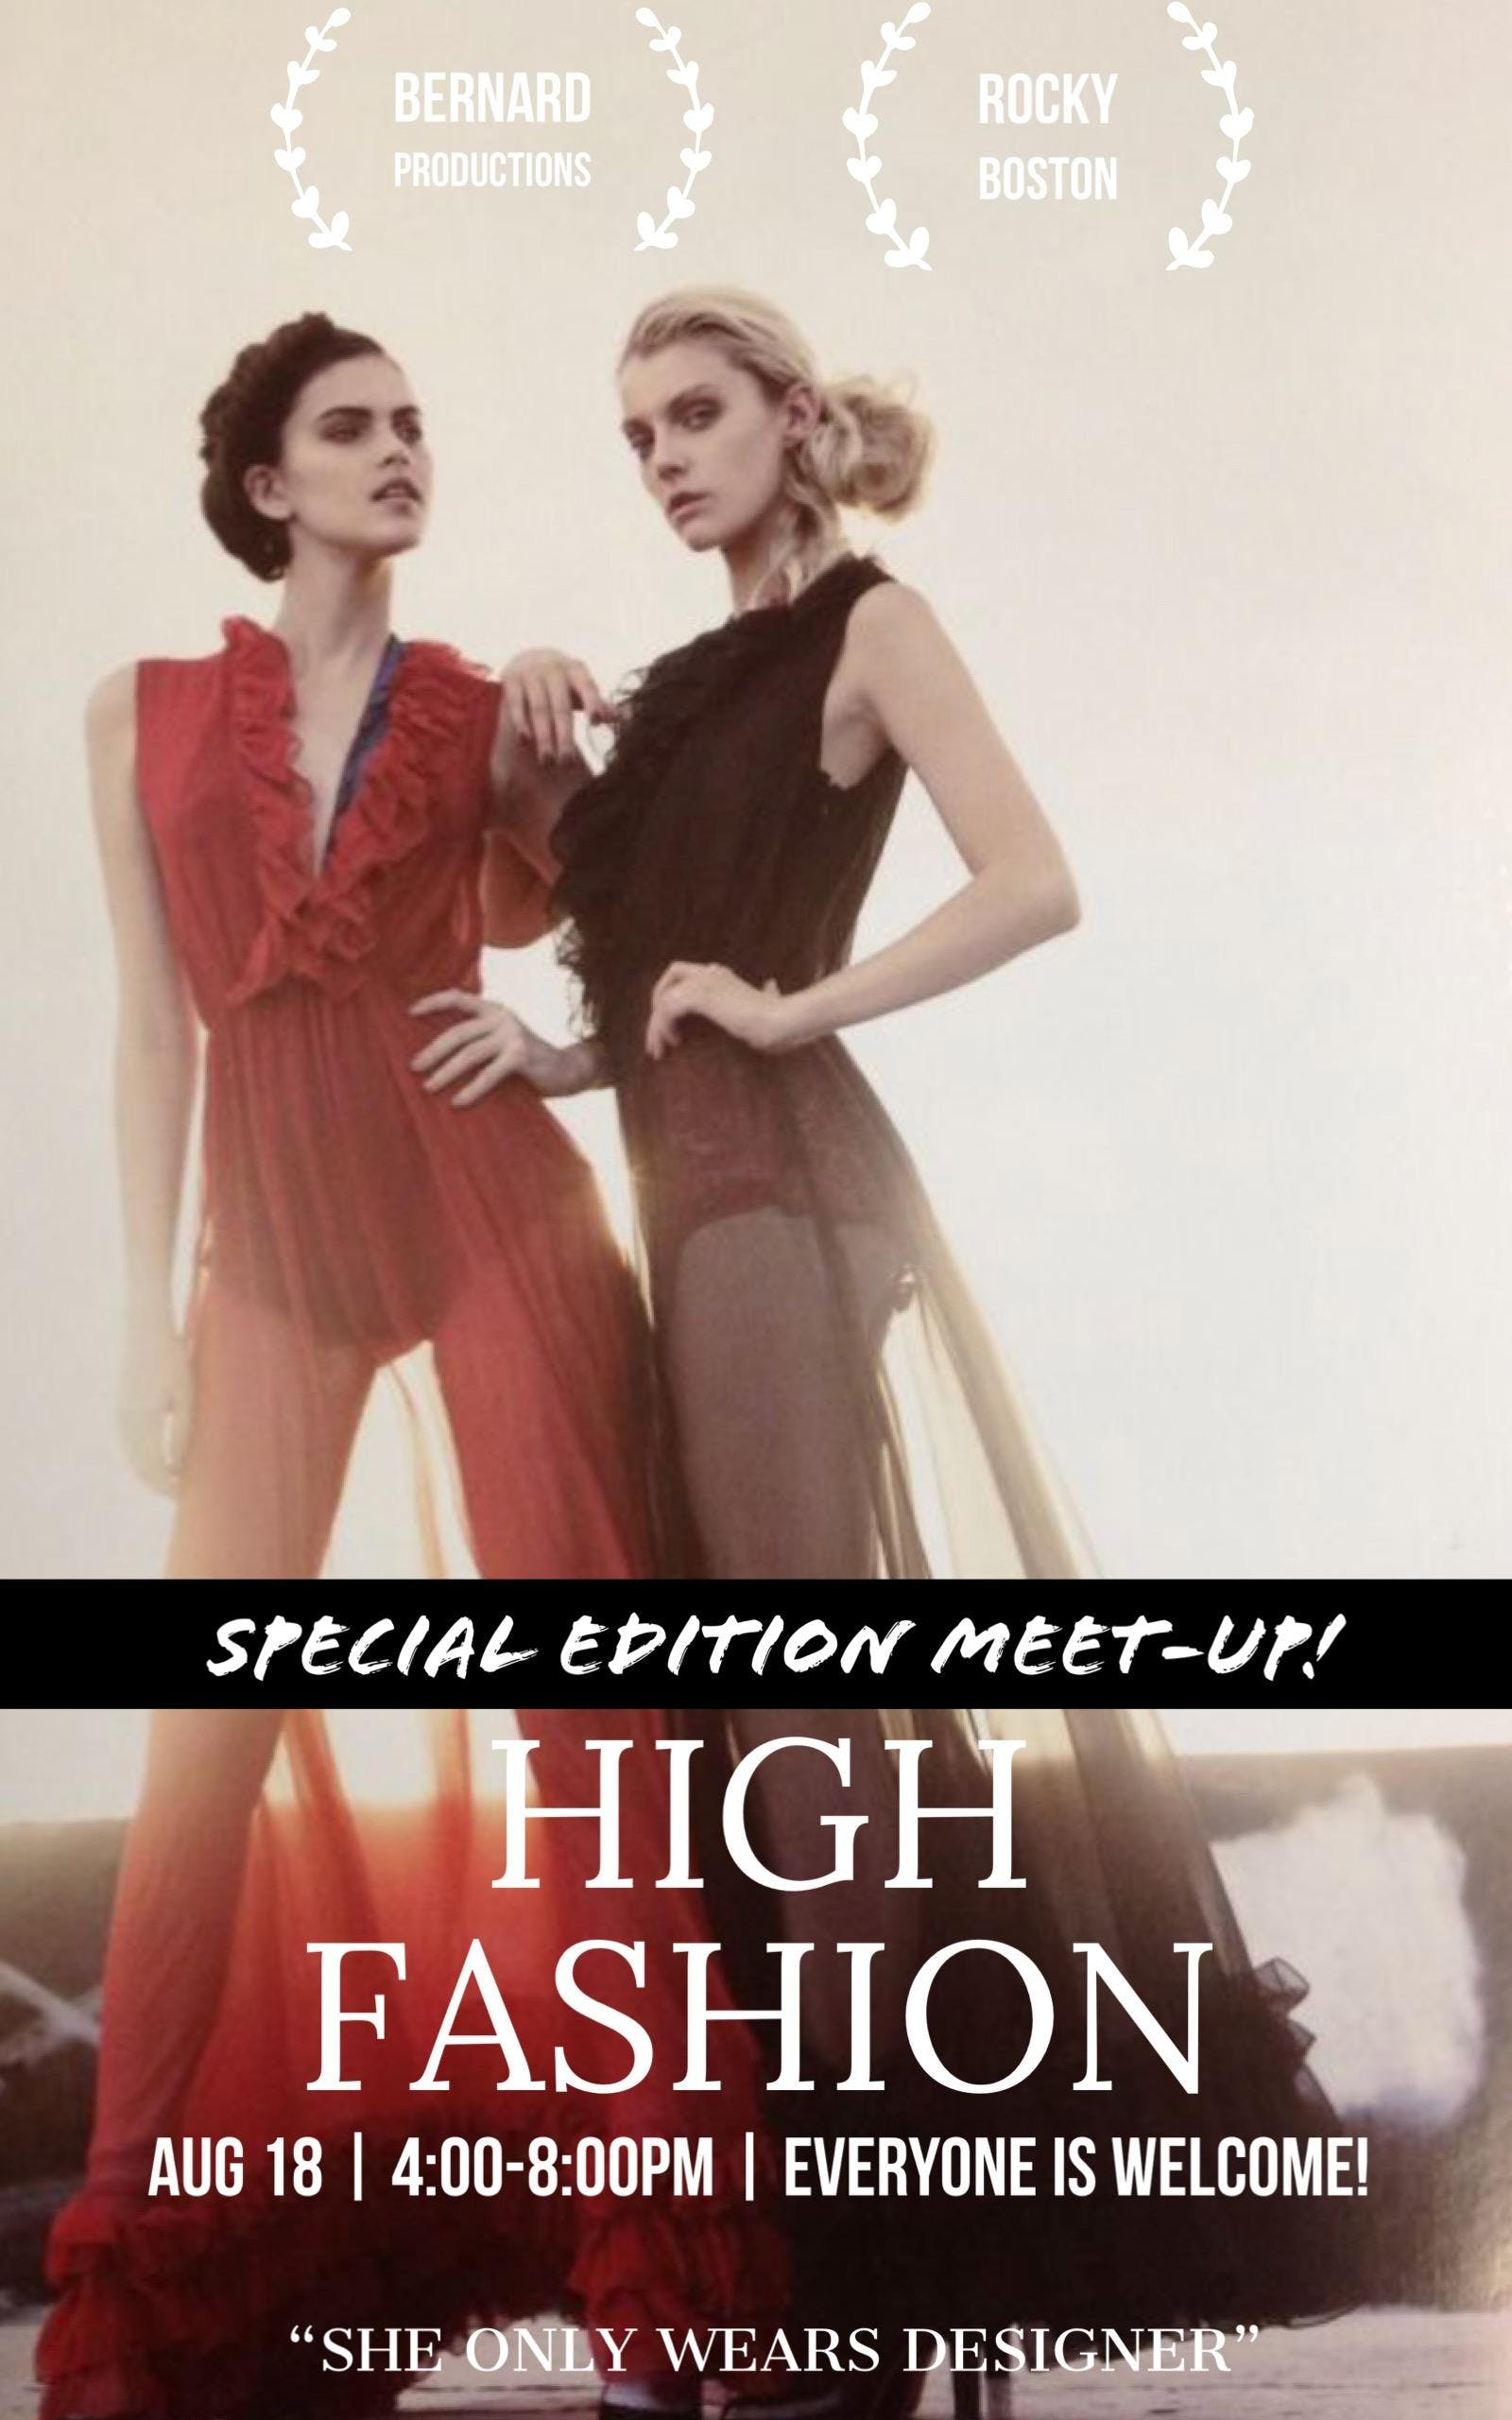 [SPECIAL EDITION] -HIGH FASHION Meet-Up - Hou